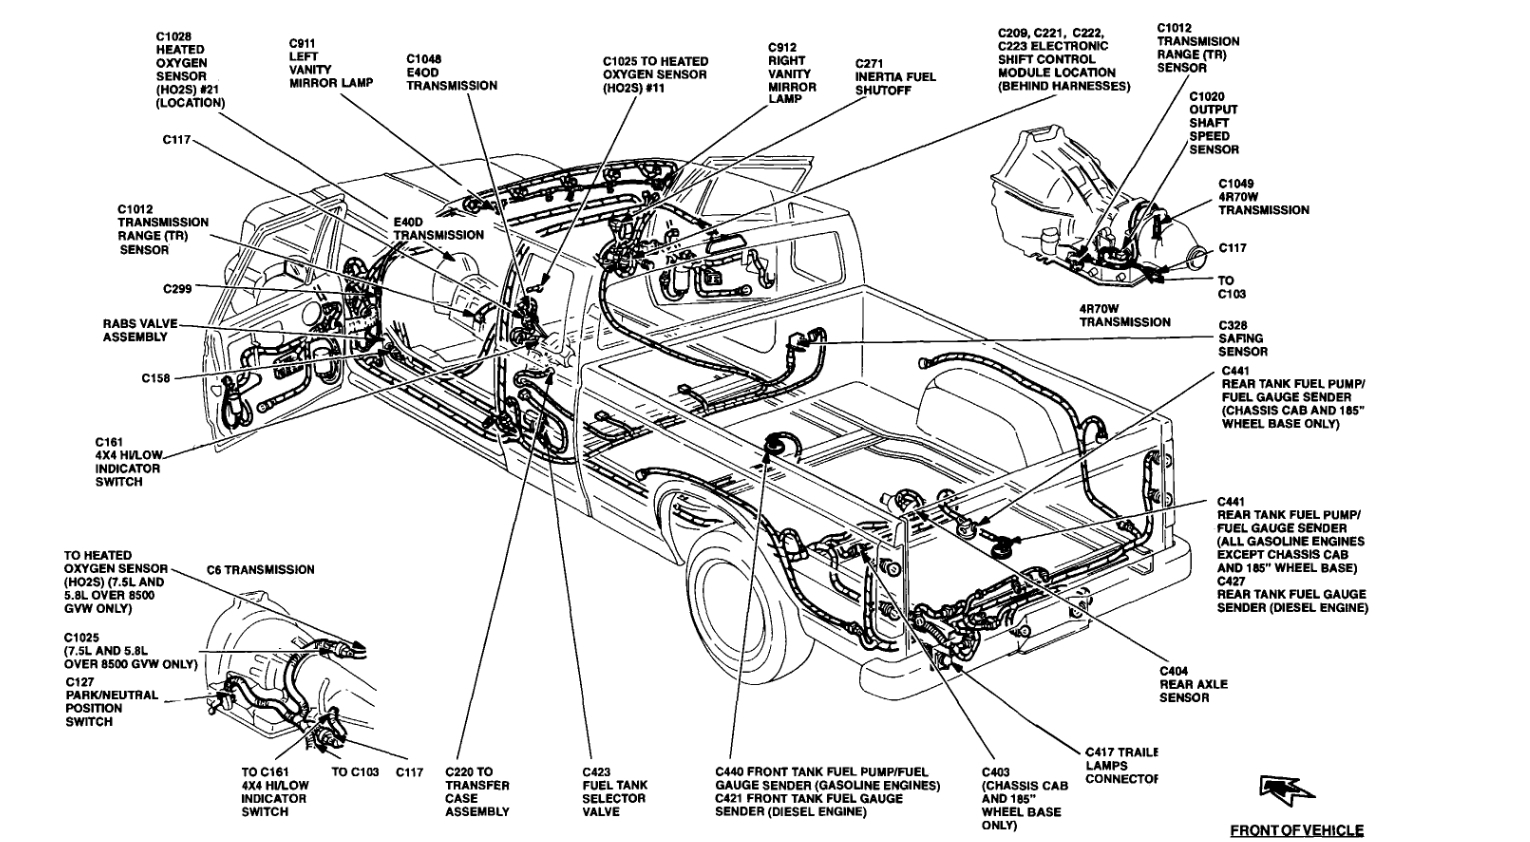 Ford Fuel Tank Selector Switch Wiring Diagram from www.2carpros.com